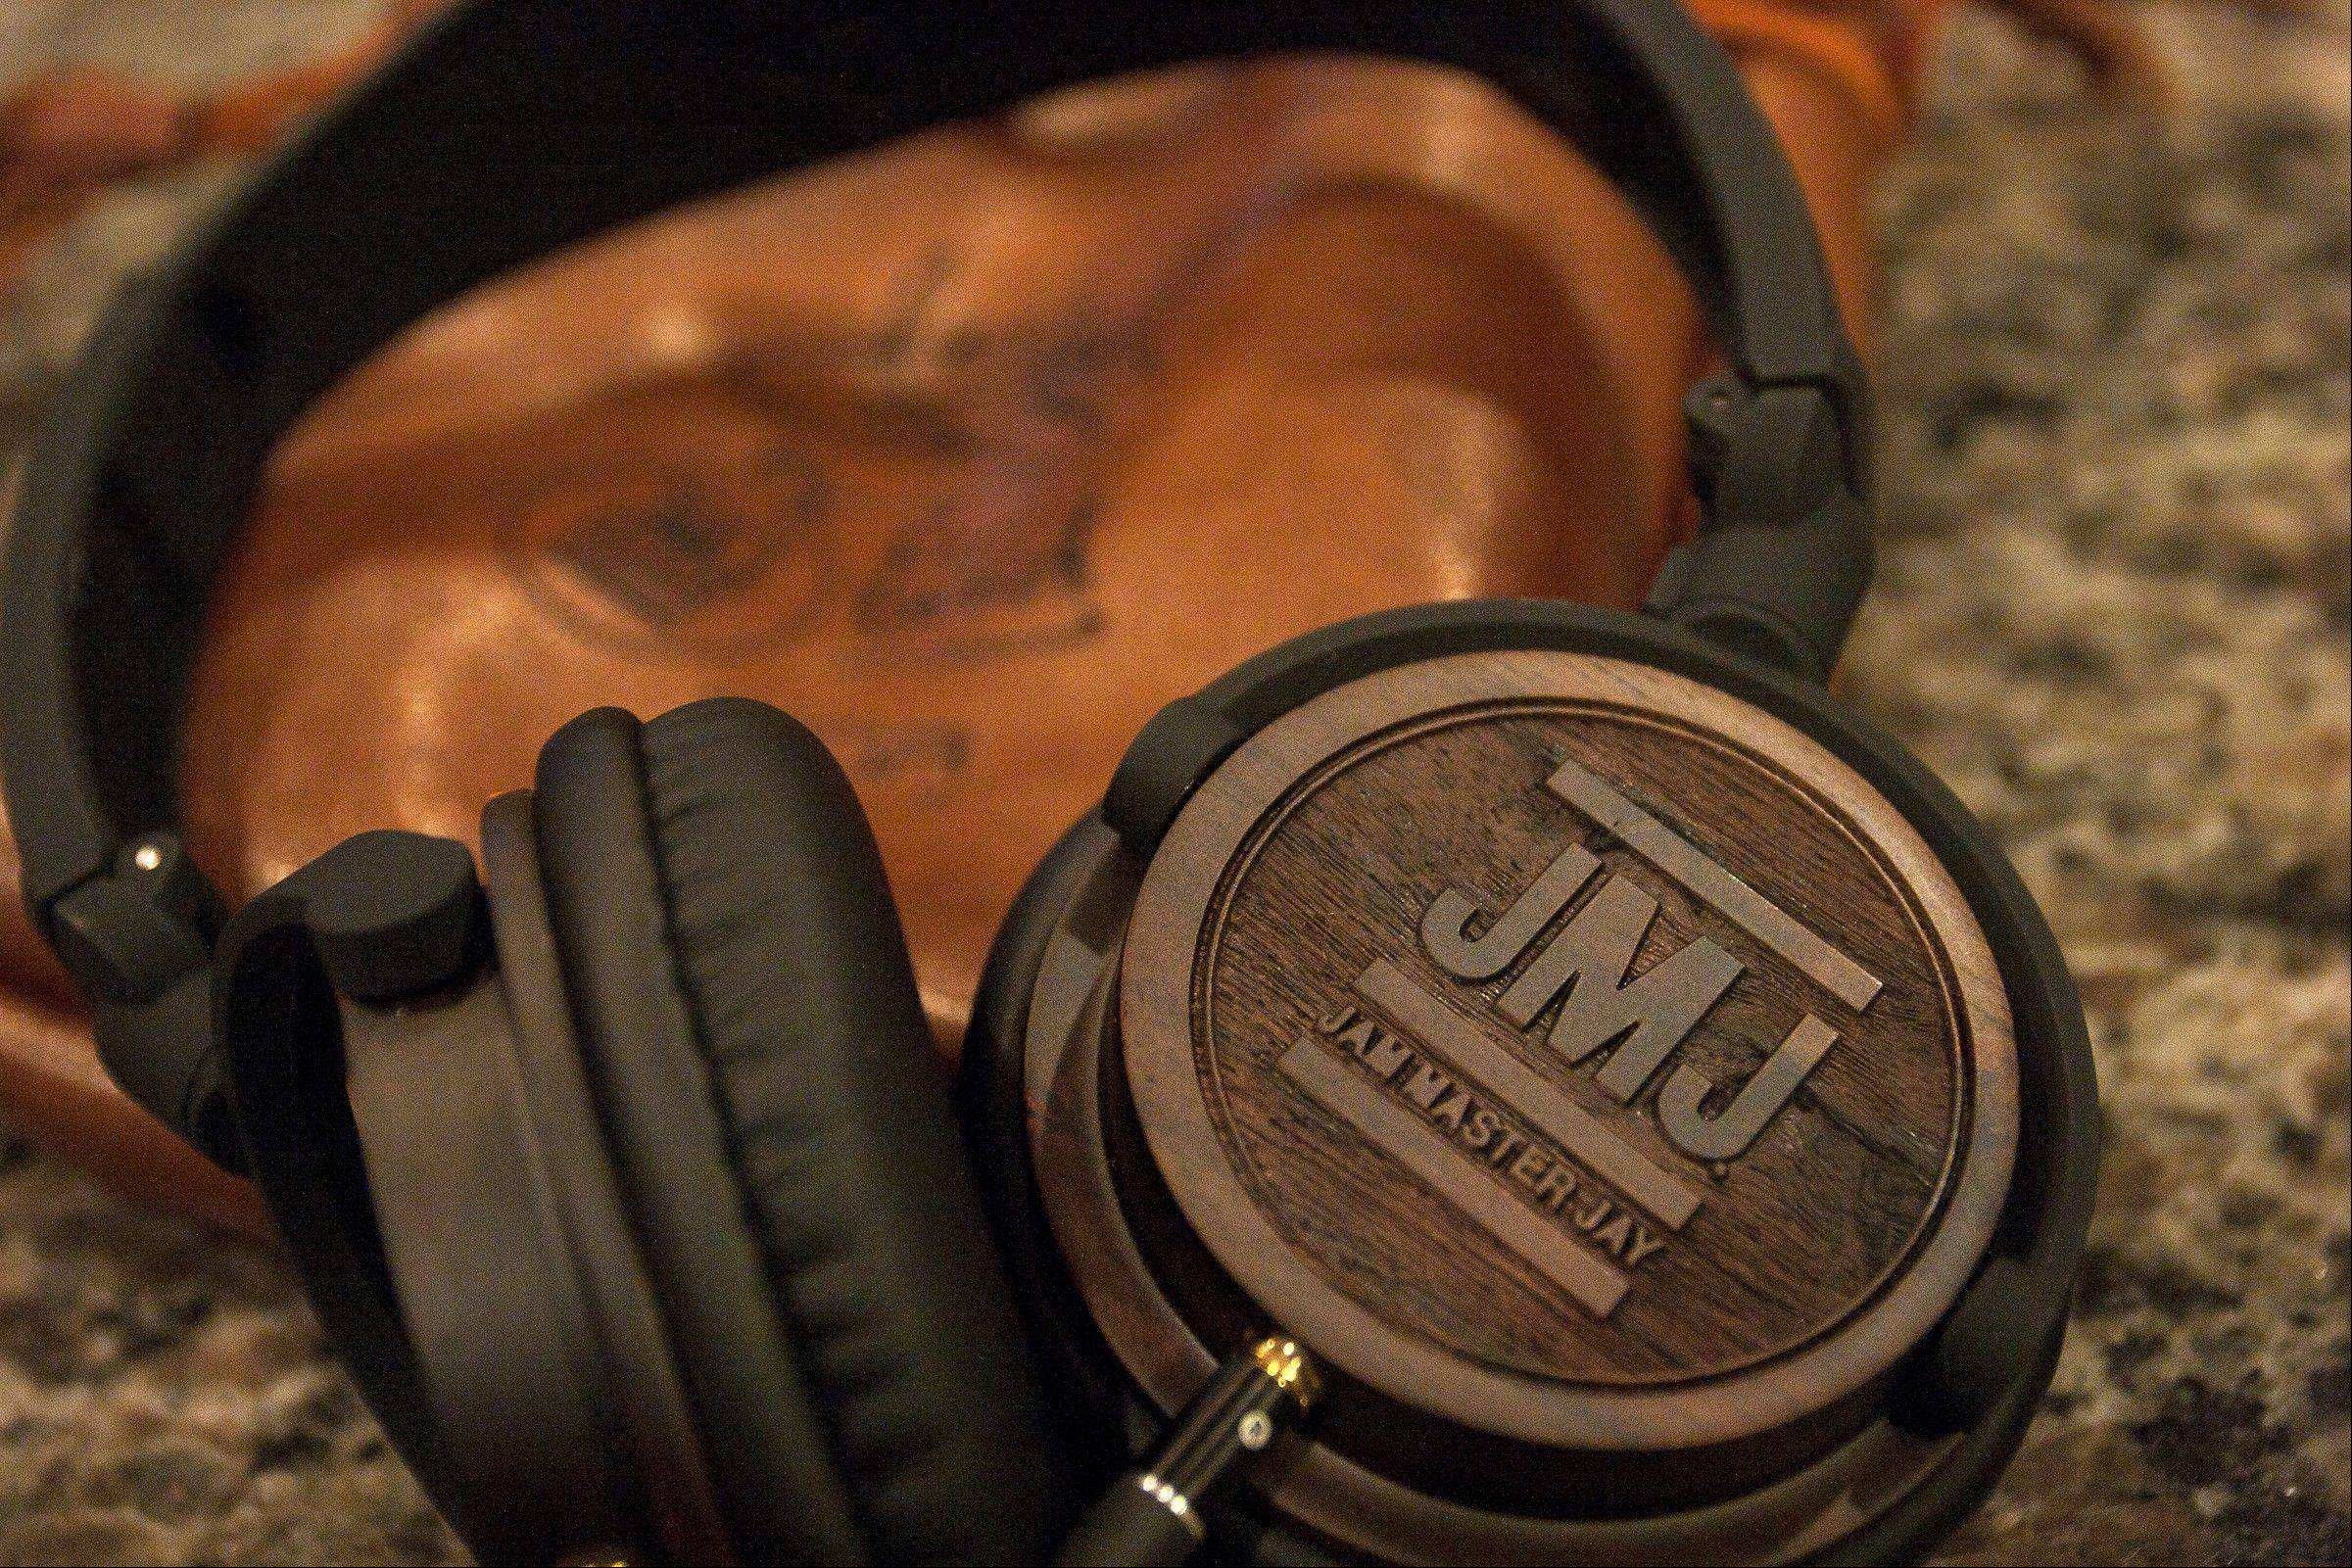 Jam Master Jay signature model headphones from BiGR Audio. The headphones were designed with a nod to the late Jason Mizell, a member of the rap group Run-DMC.